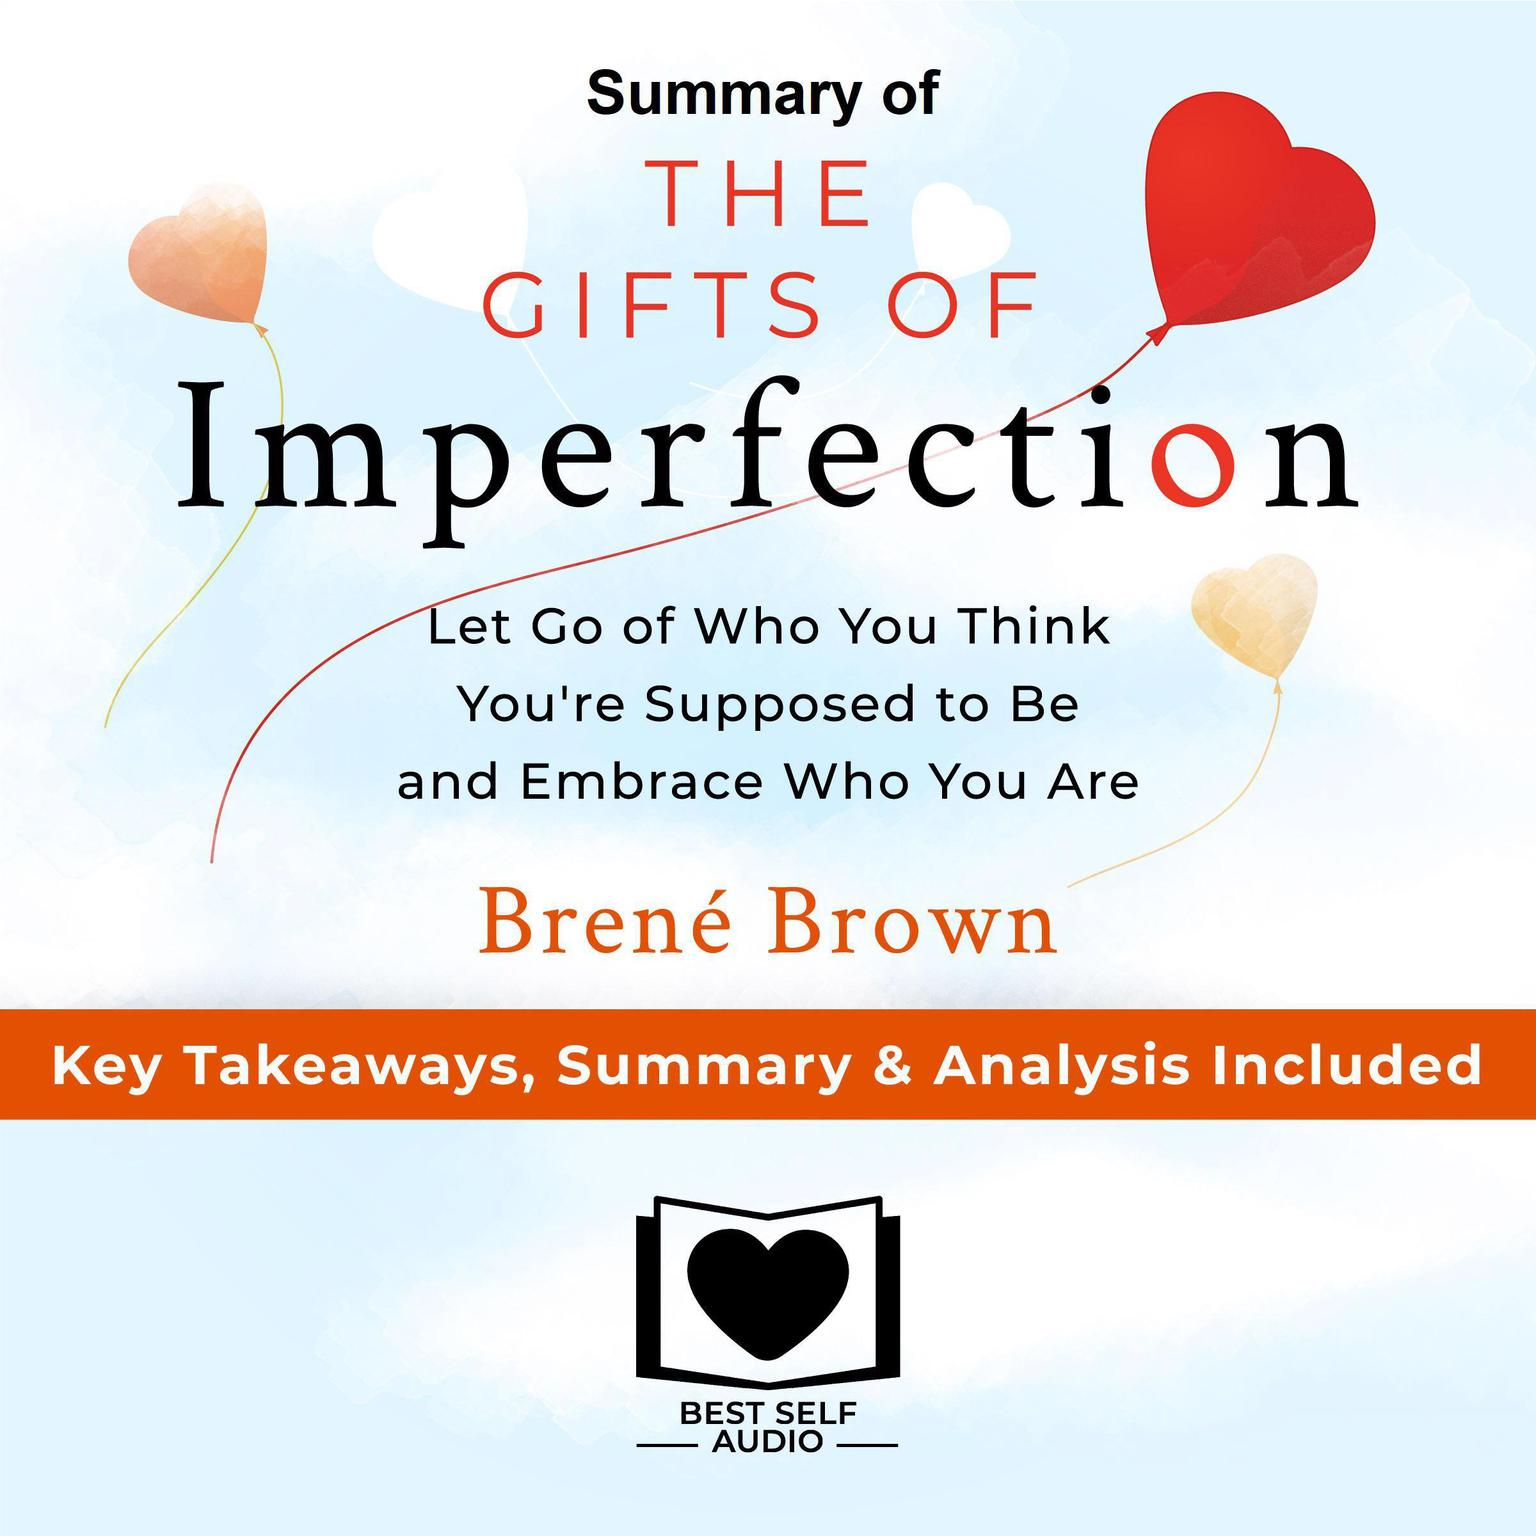 Printable Summary of The Gifts of Imperfection: Let Go of Who You Think You're Supposed to Be and Embrace Who You Are by Brené Brown: Key Takeaways, Summary & Analysis Included Audiobook Cover Art